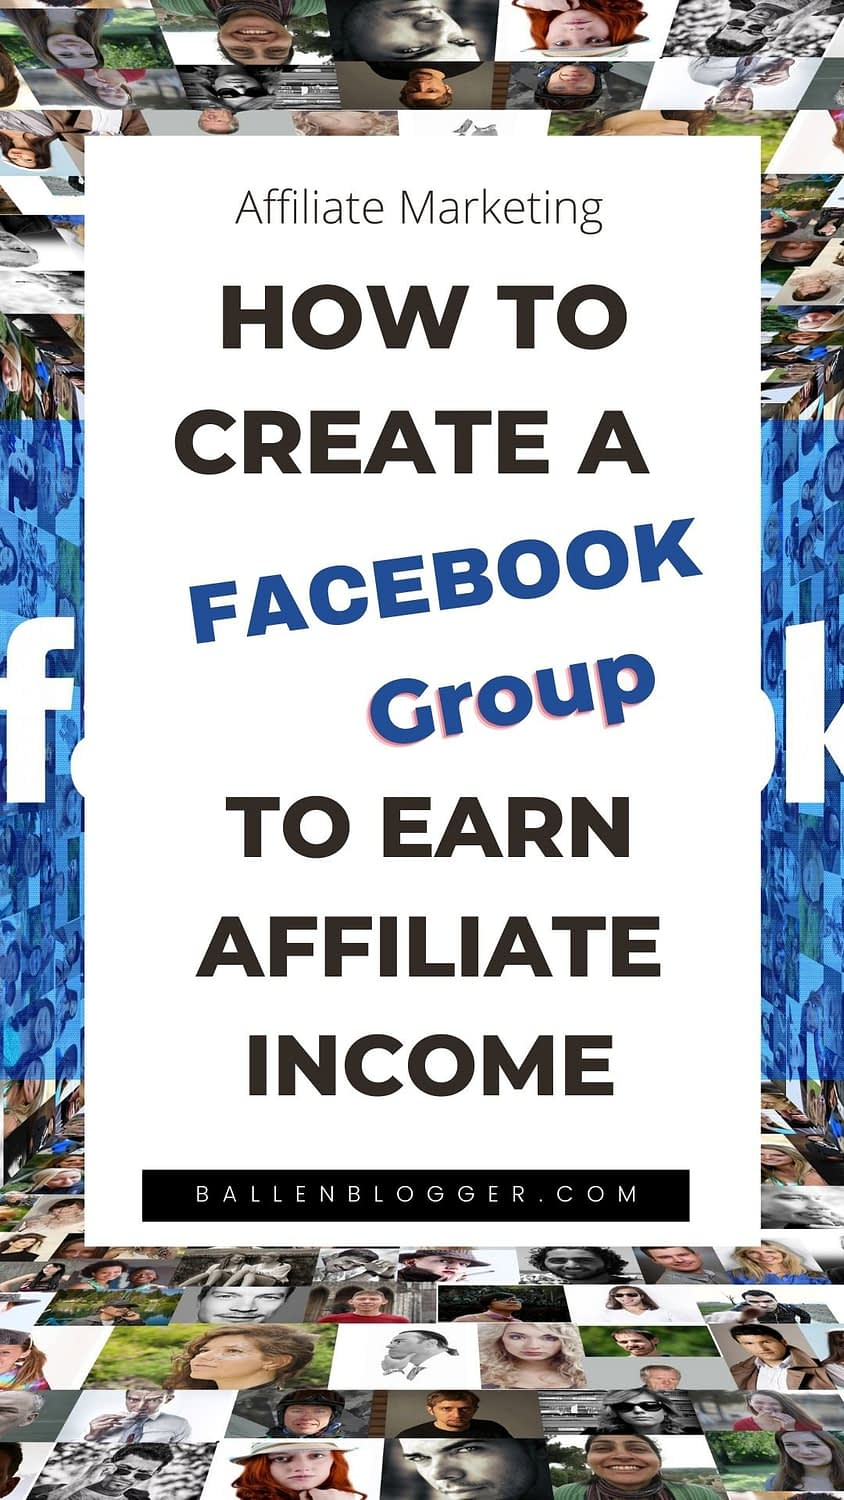 Here is a systematic guide to kick-start the process and create a powerful Facebook group in which you can share affiliate links and grow your affiliate marketing income.